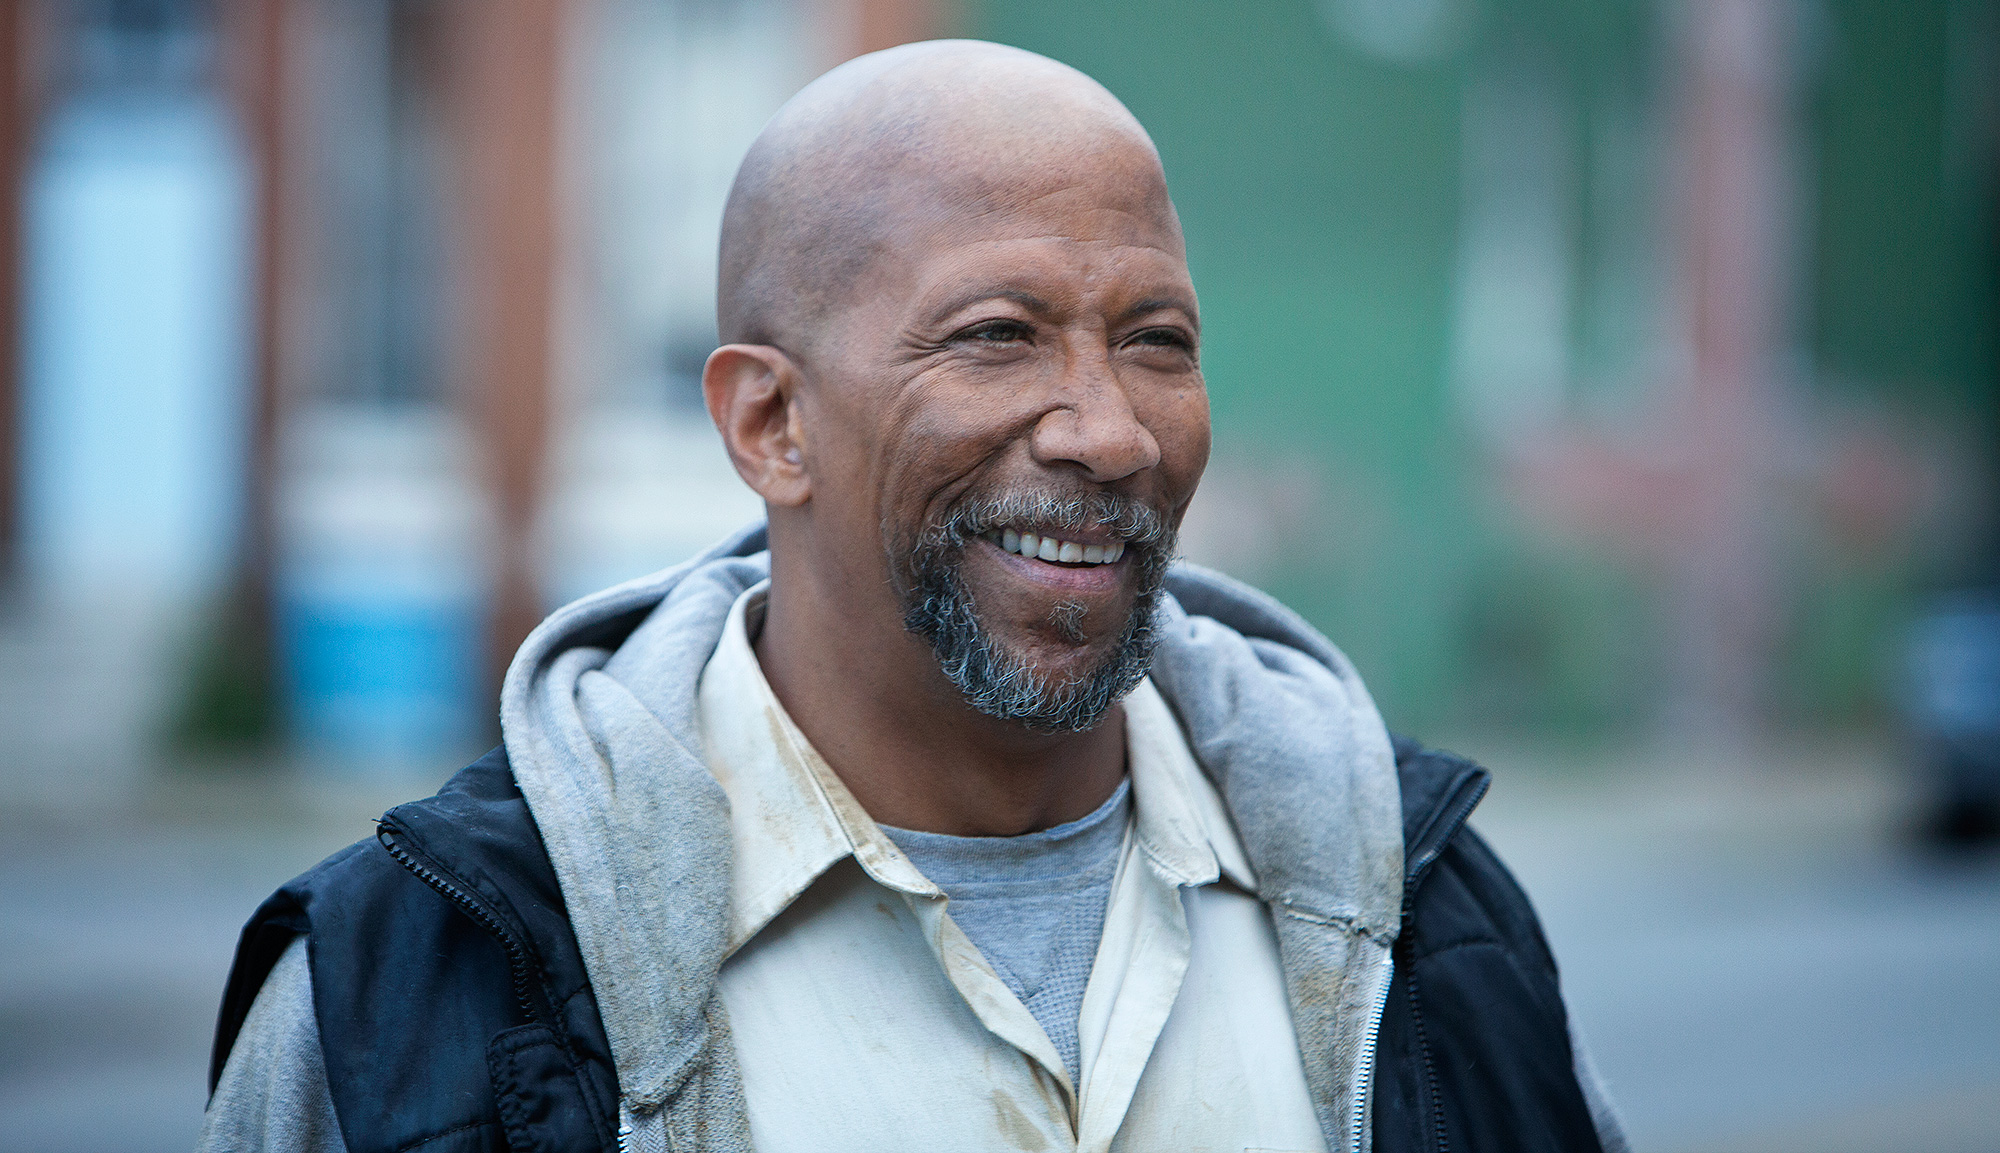 'House of Cards' and 'The Wire' Star Reg E